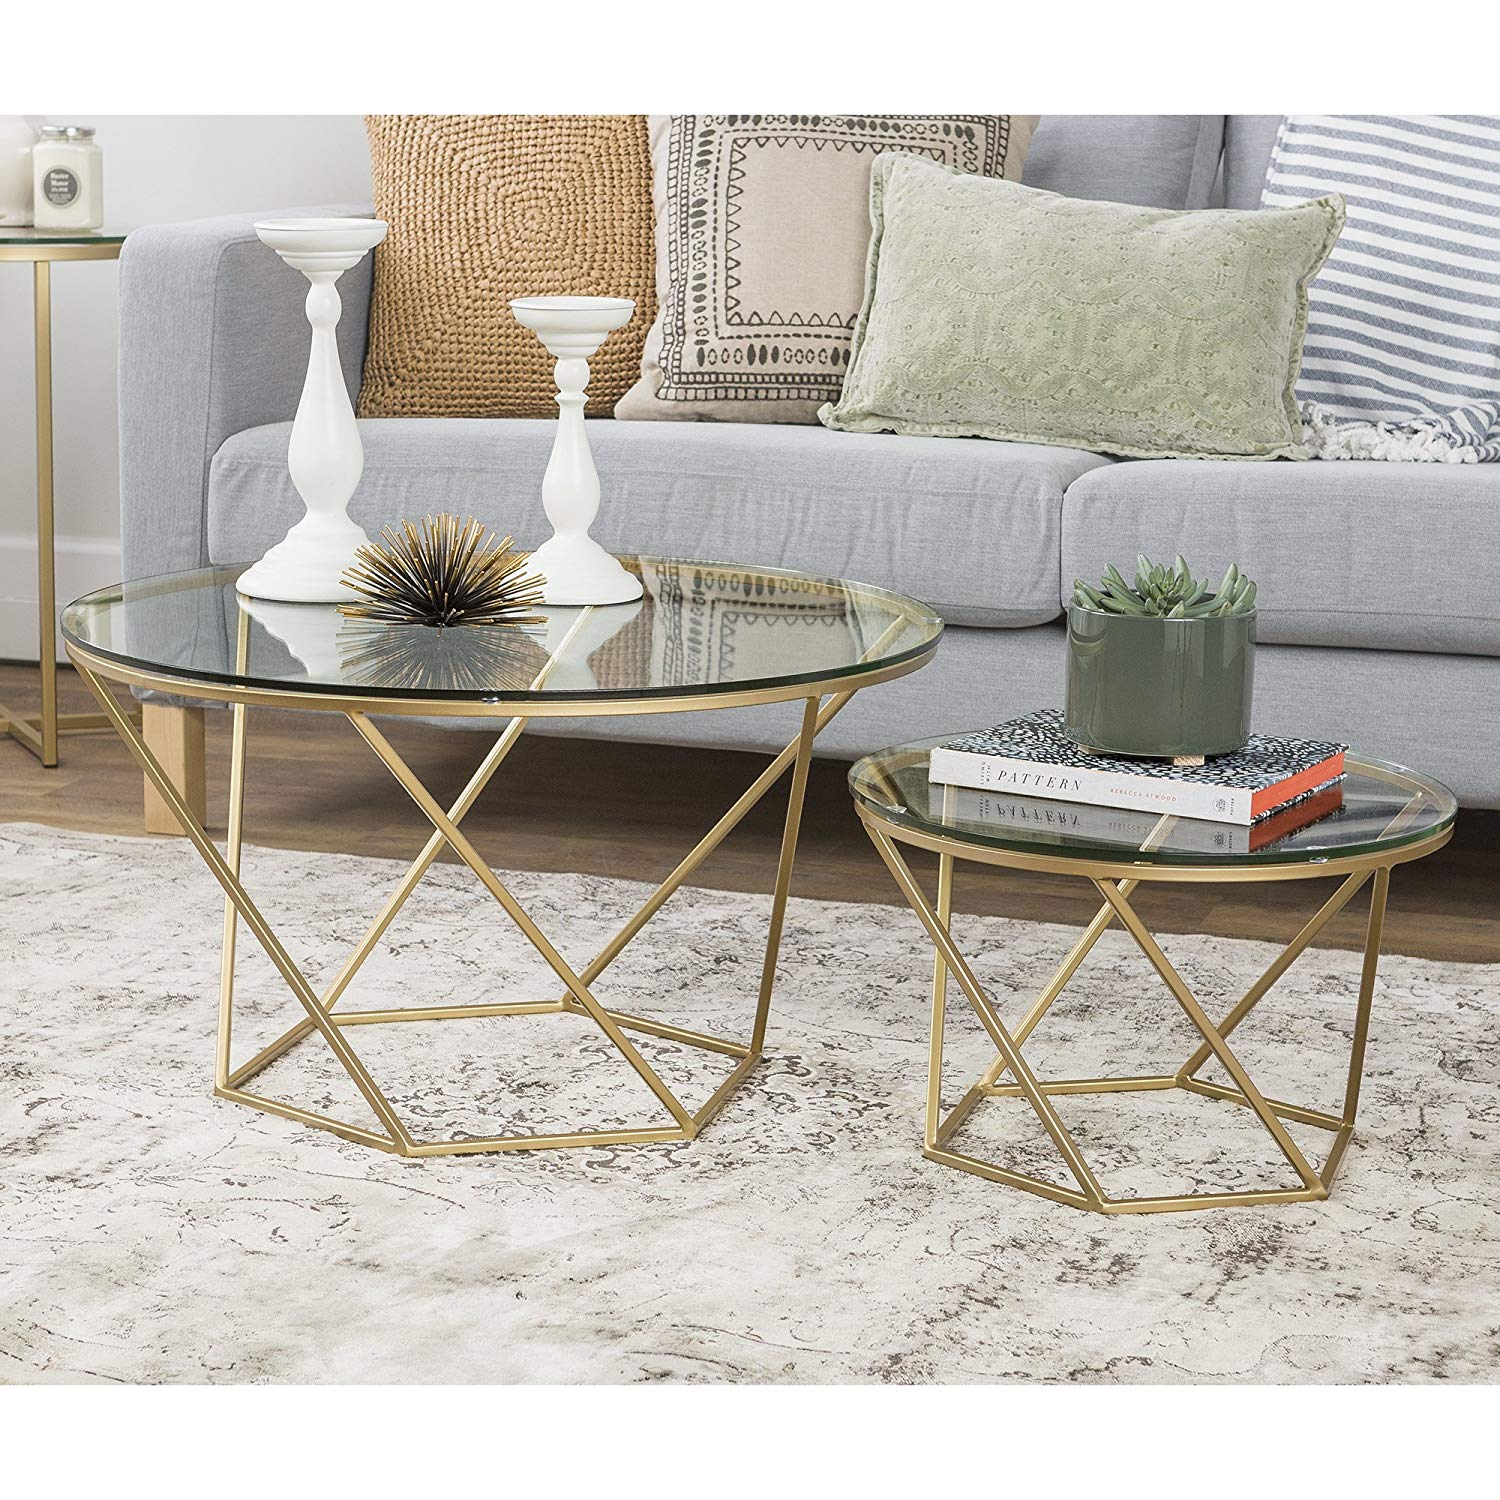 furniture geometric glass nesting coffee tables bxel accent living room gold kitchen dining modern black sheer curtains folding hairpin legs bbq side table drum stool cover